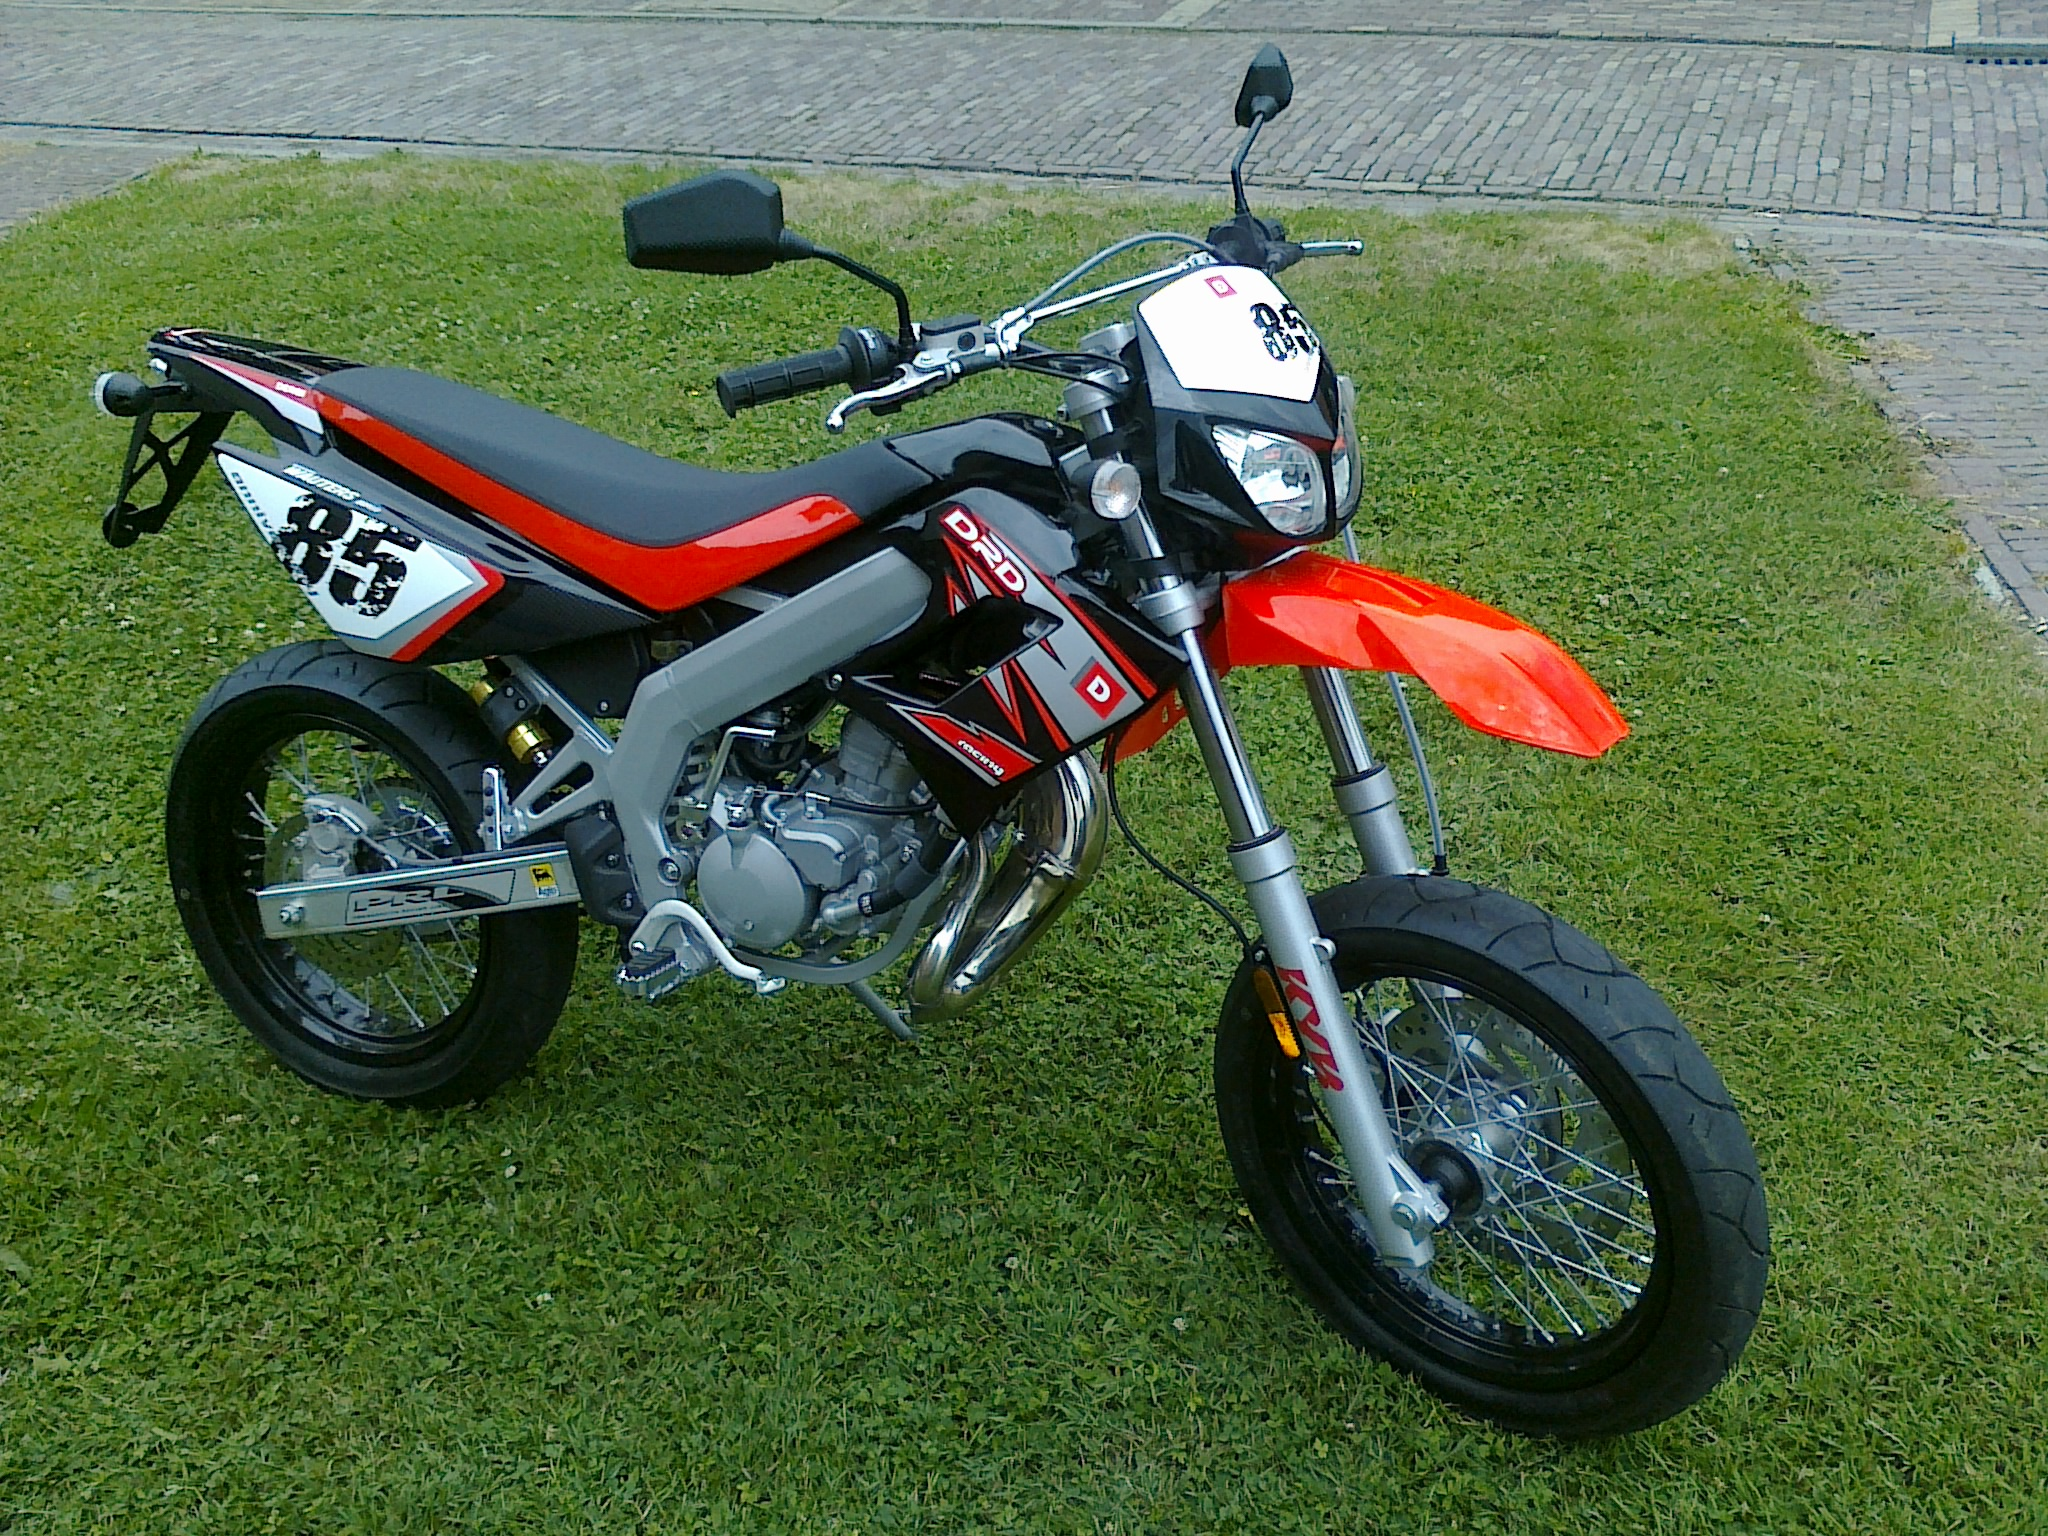 Derbi Senda DRD Evo 50 SM Limited Edition images #71224